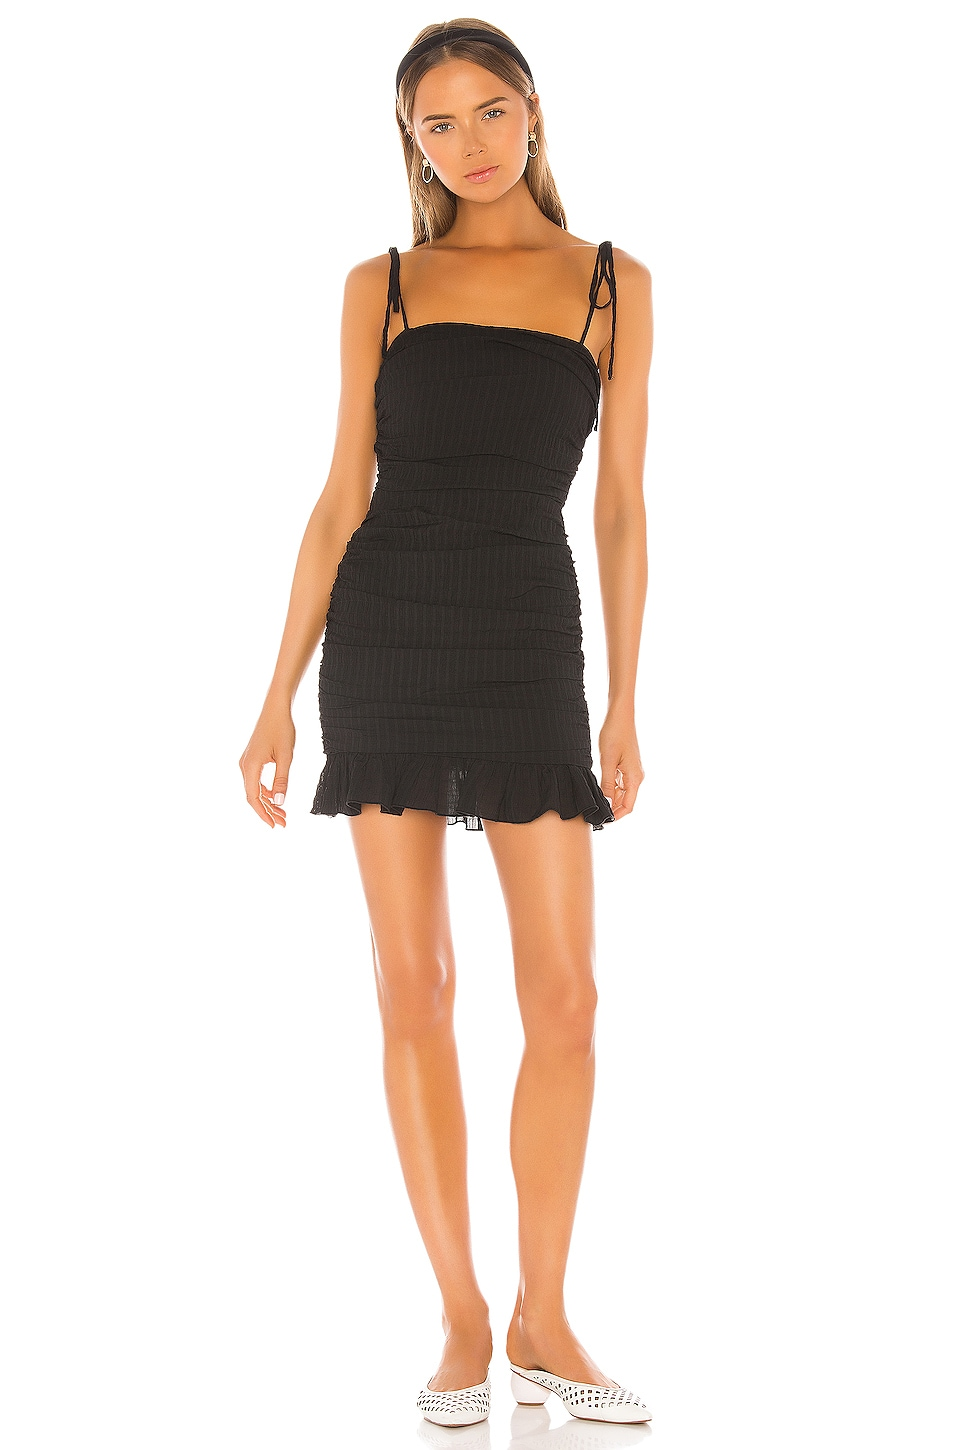 Lovers + Friends Amy Mini in Black